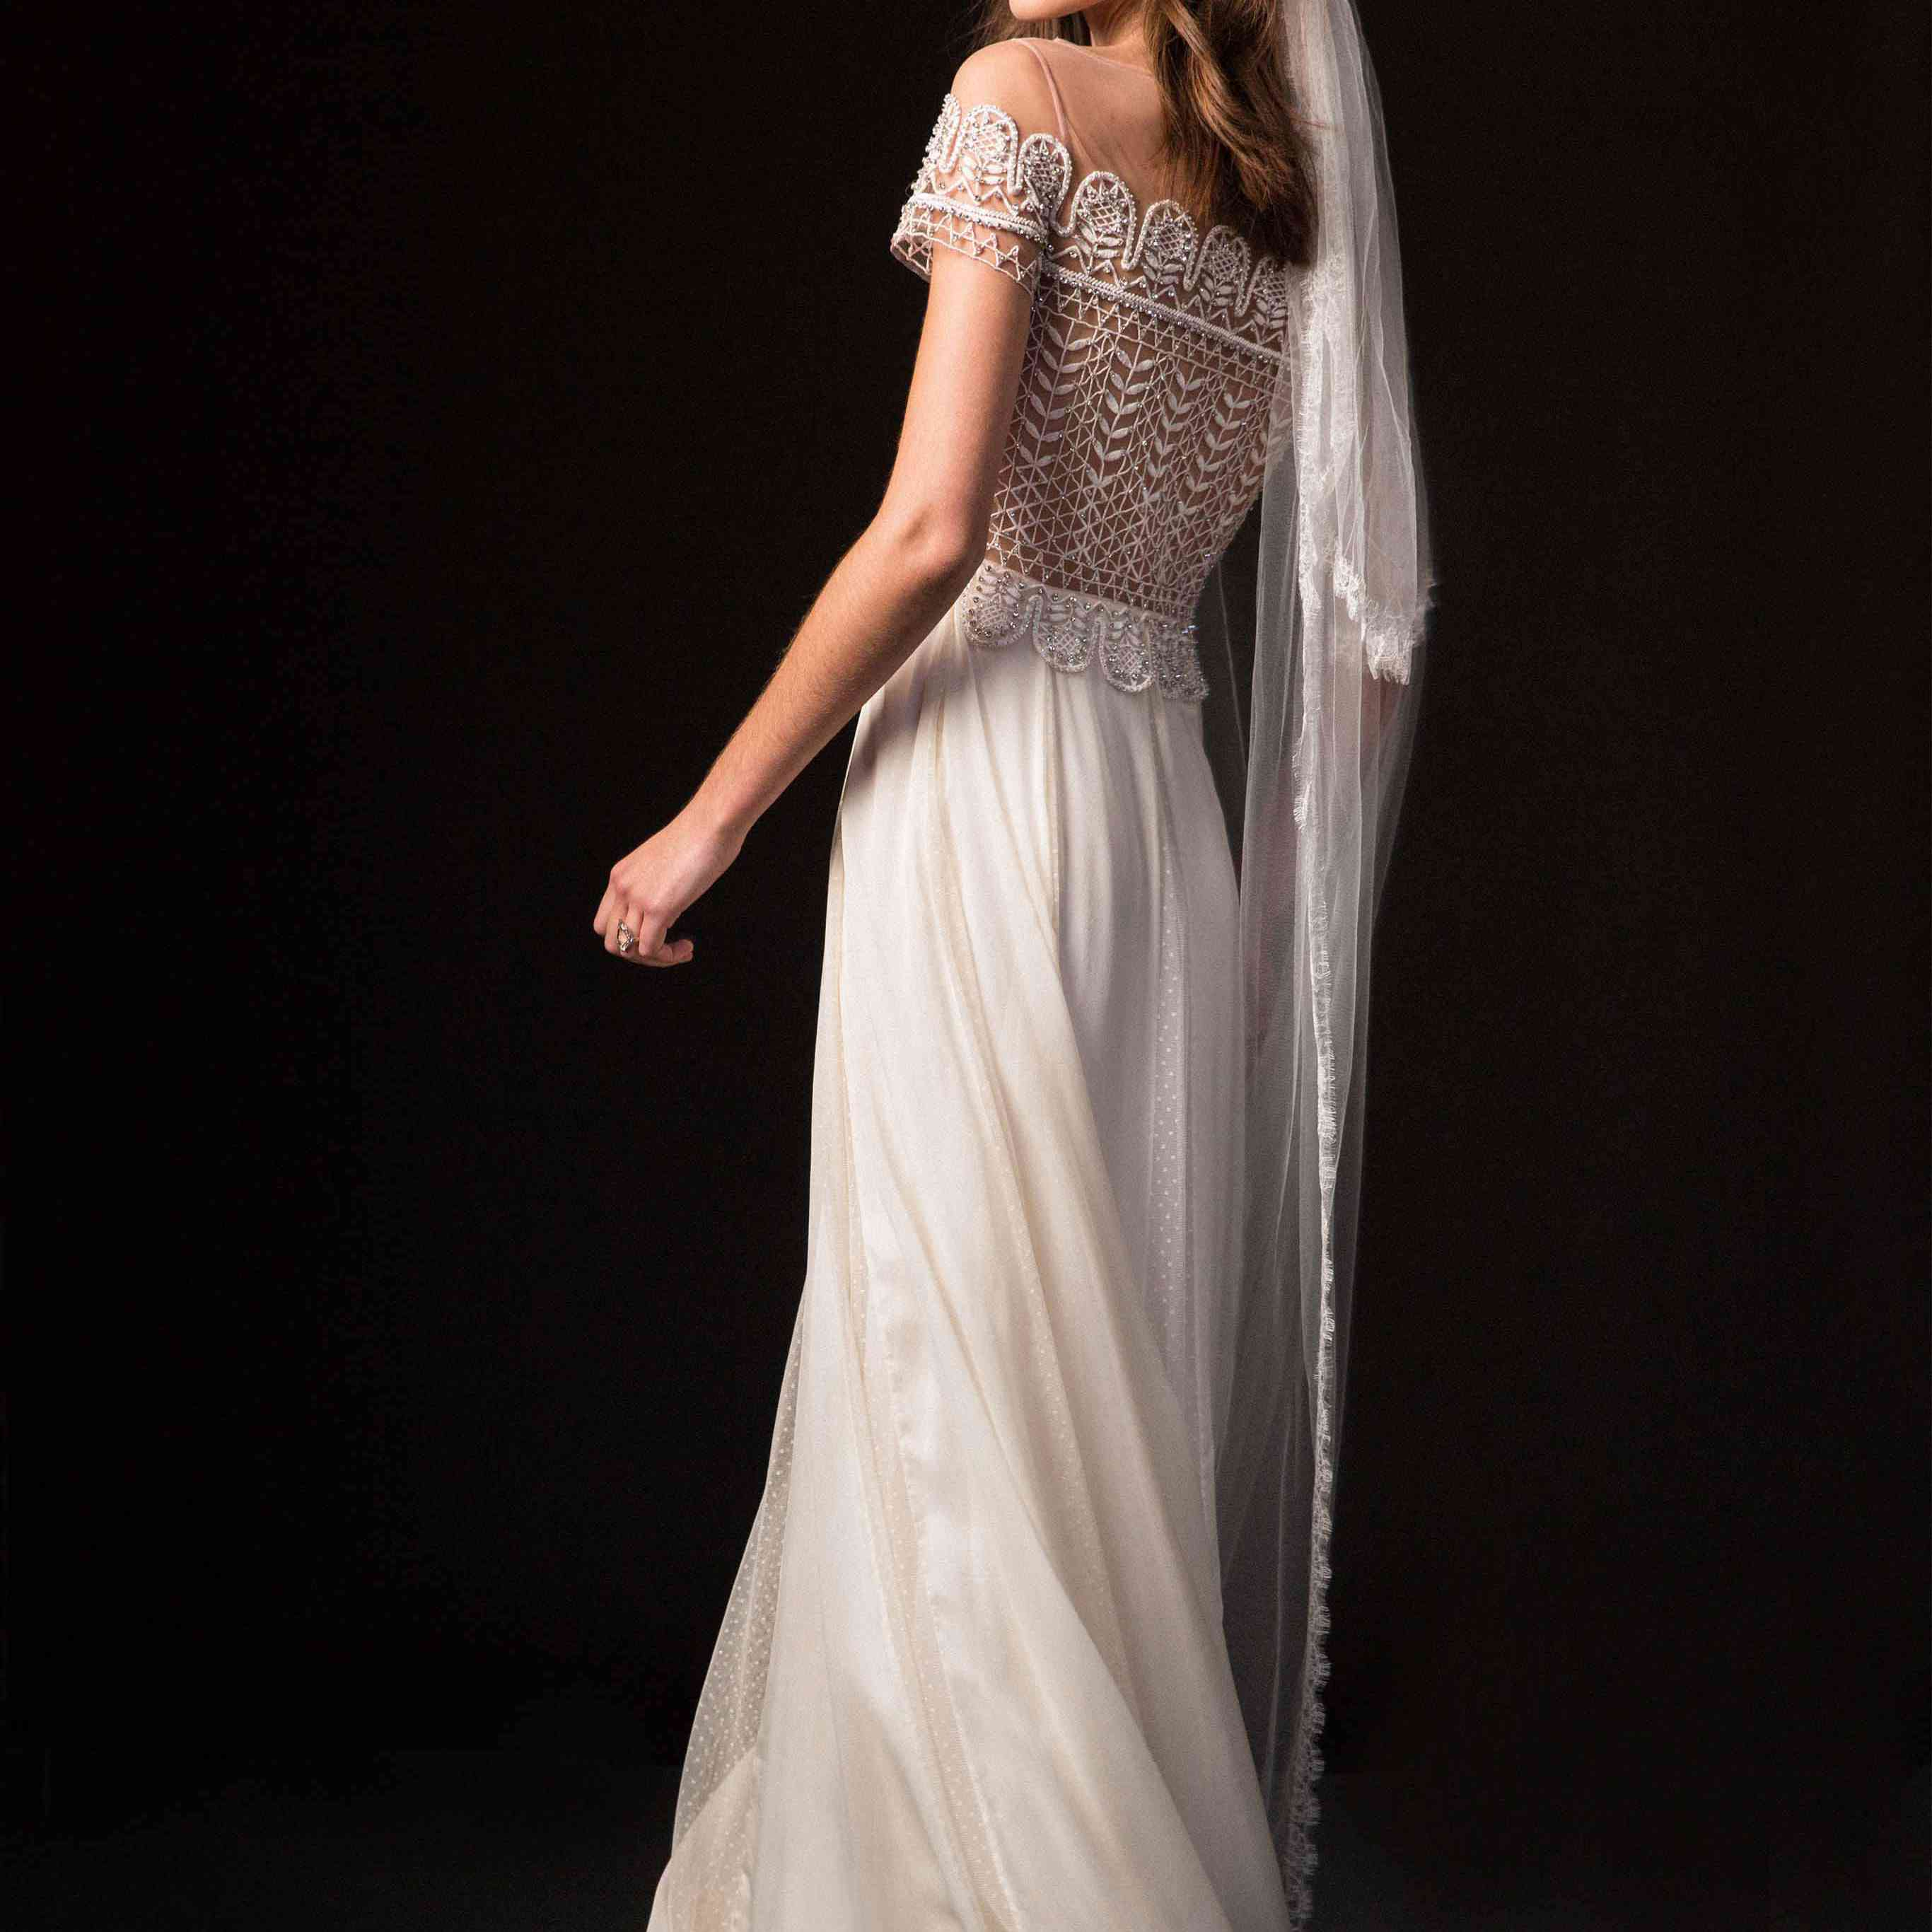 Model in illusion off-the-shoulder gown with an embroidered bodice and tulle skirt